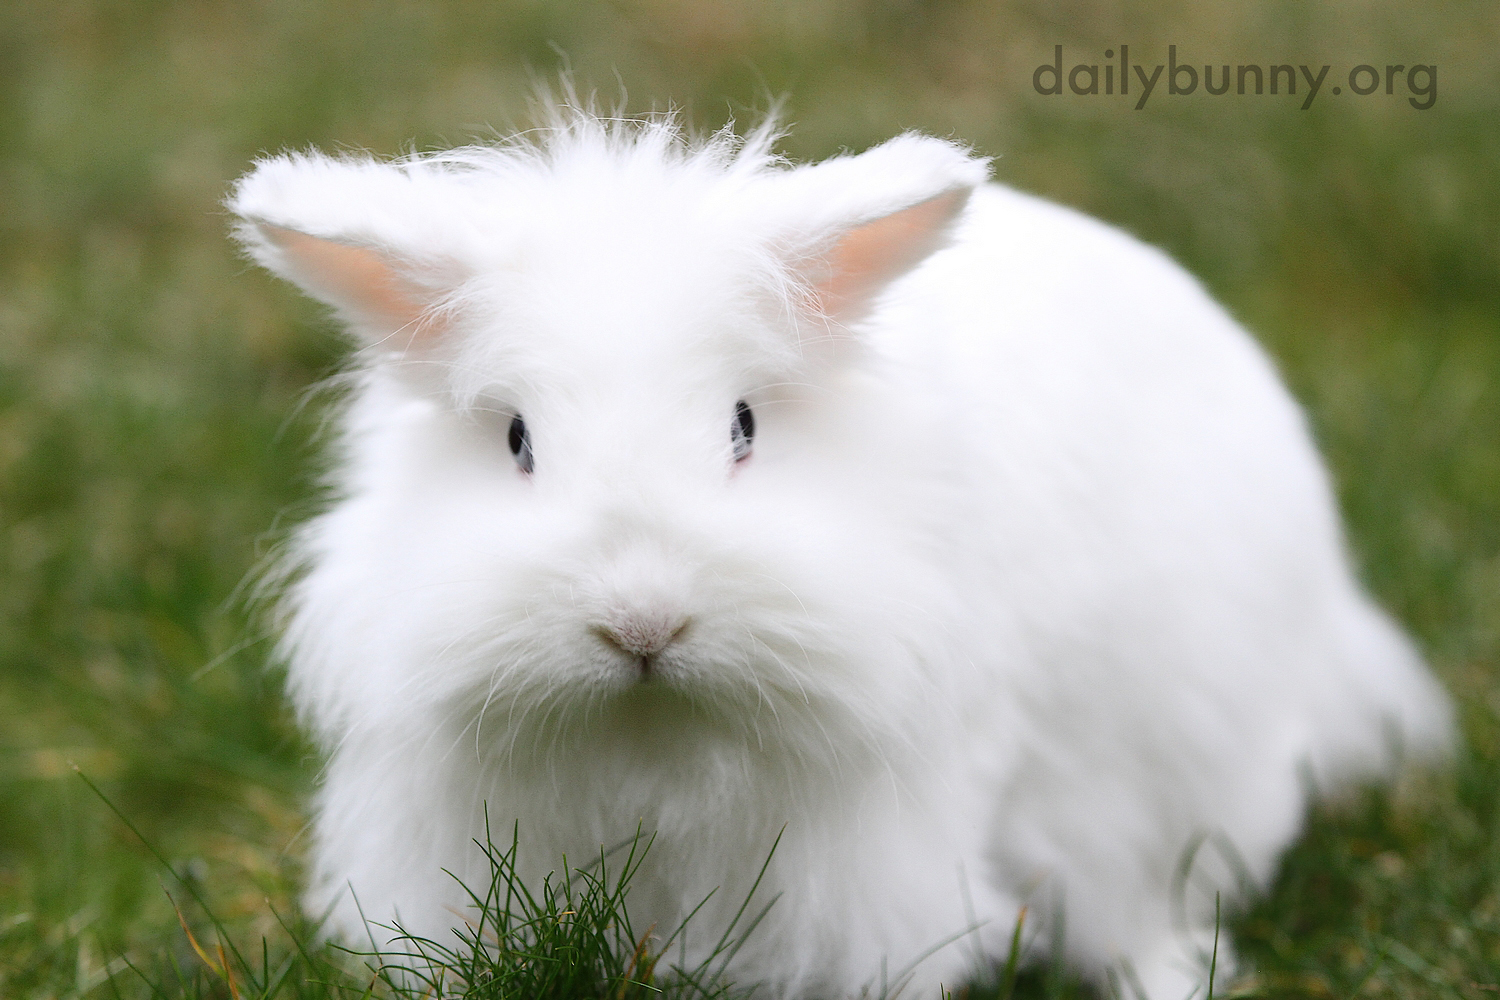 Bunny Is Content to Just Sit in the Grass for Now 2